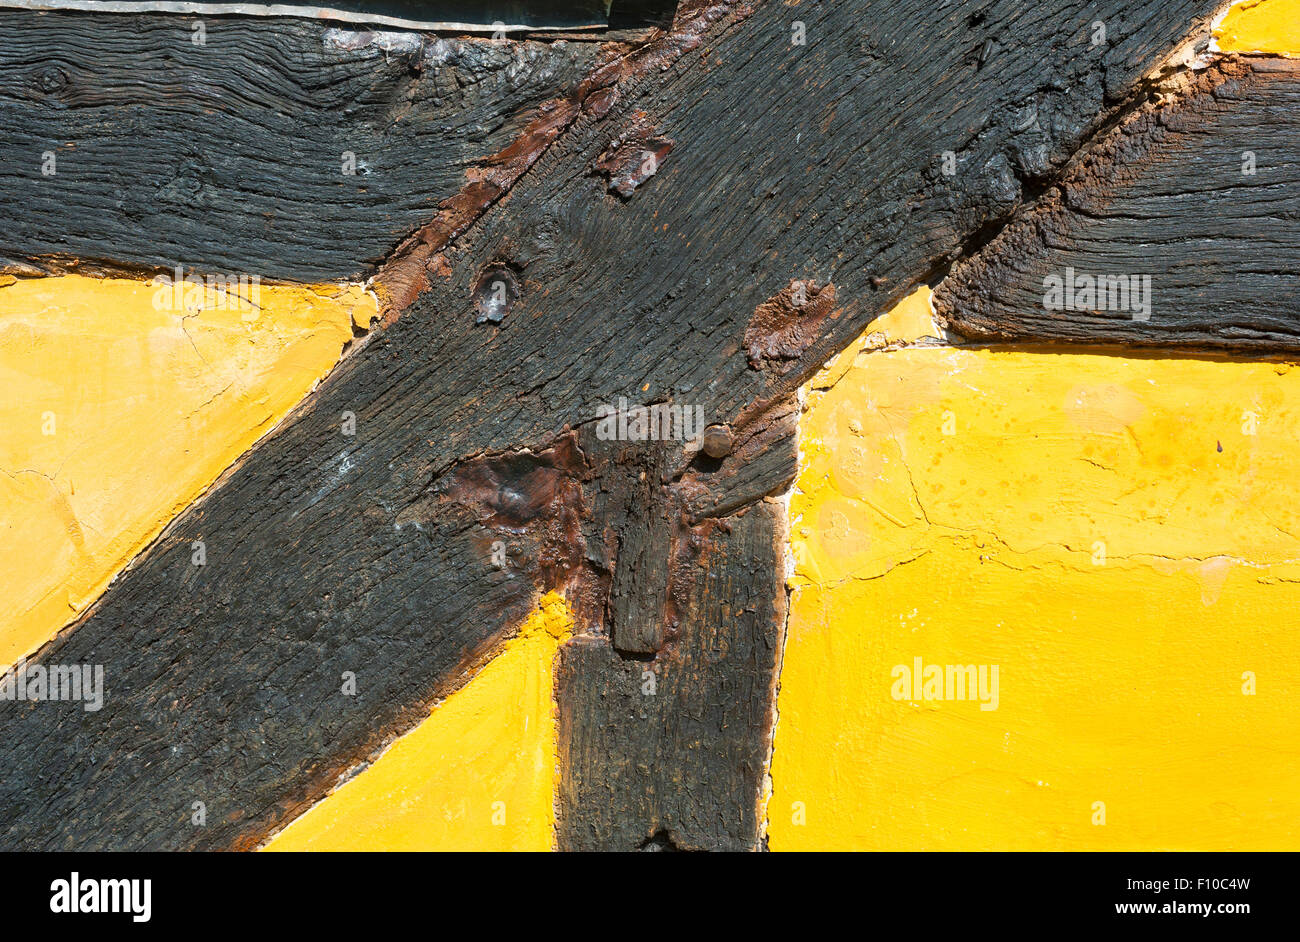 Detail of a timber-framed cottage in Worcestershire, England. - Stock Image